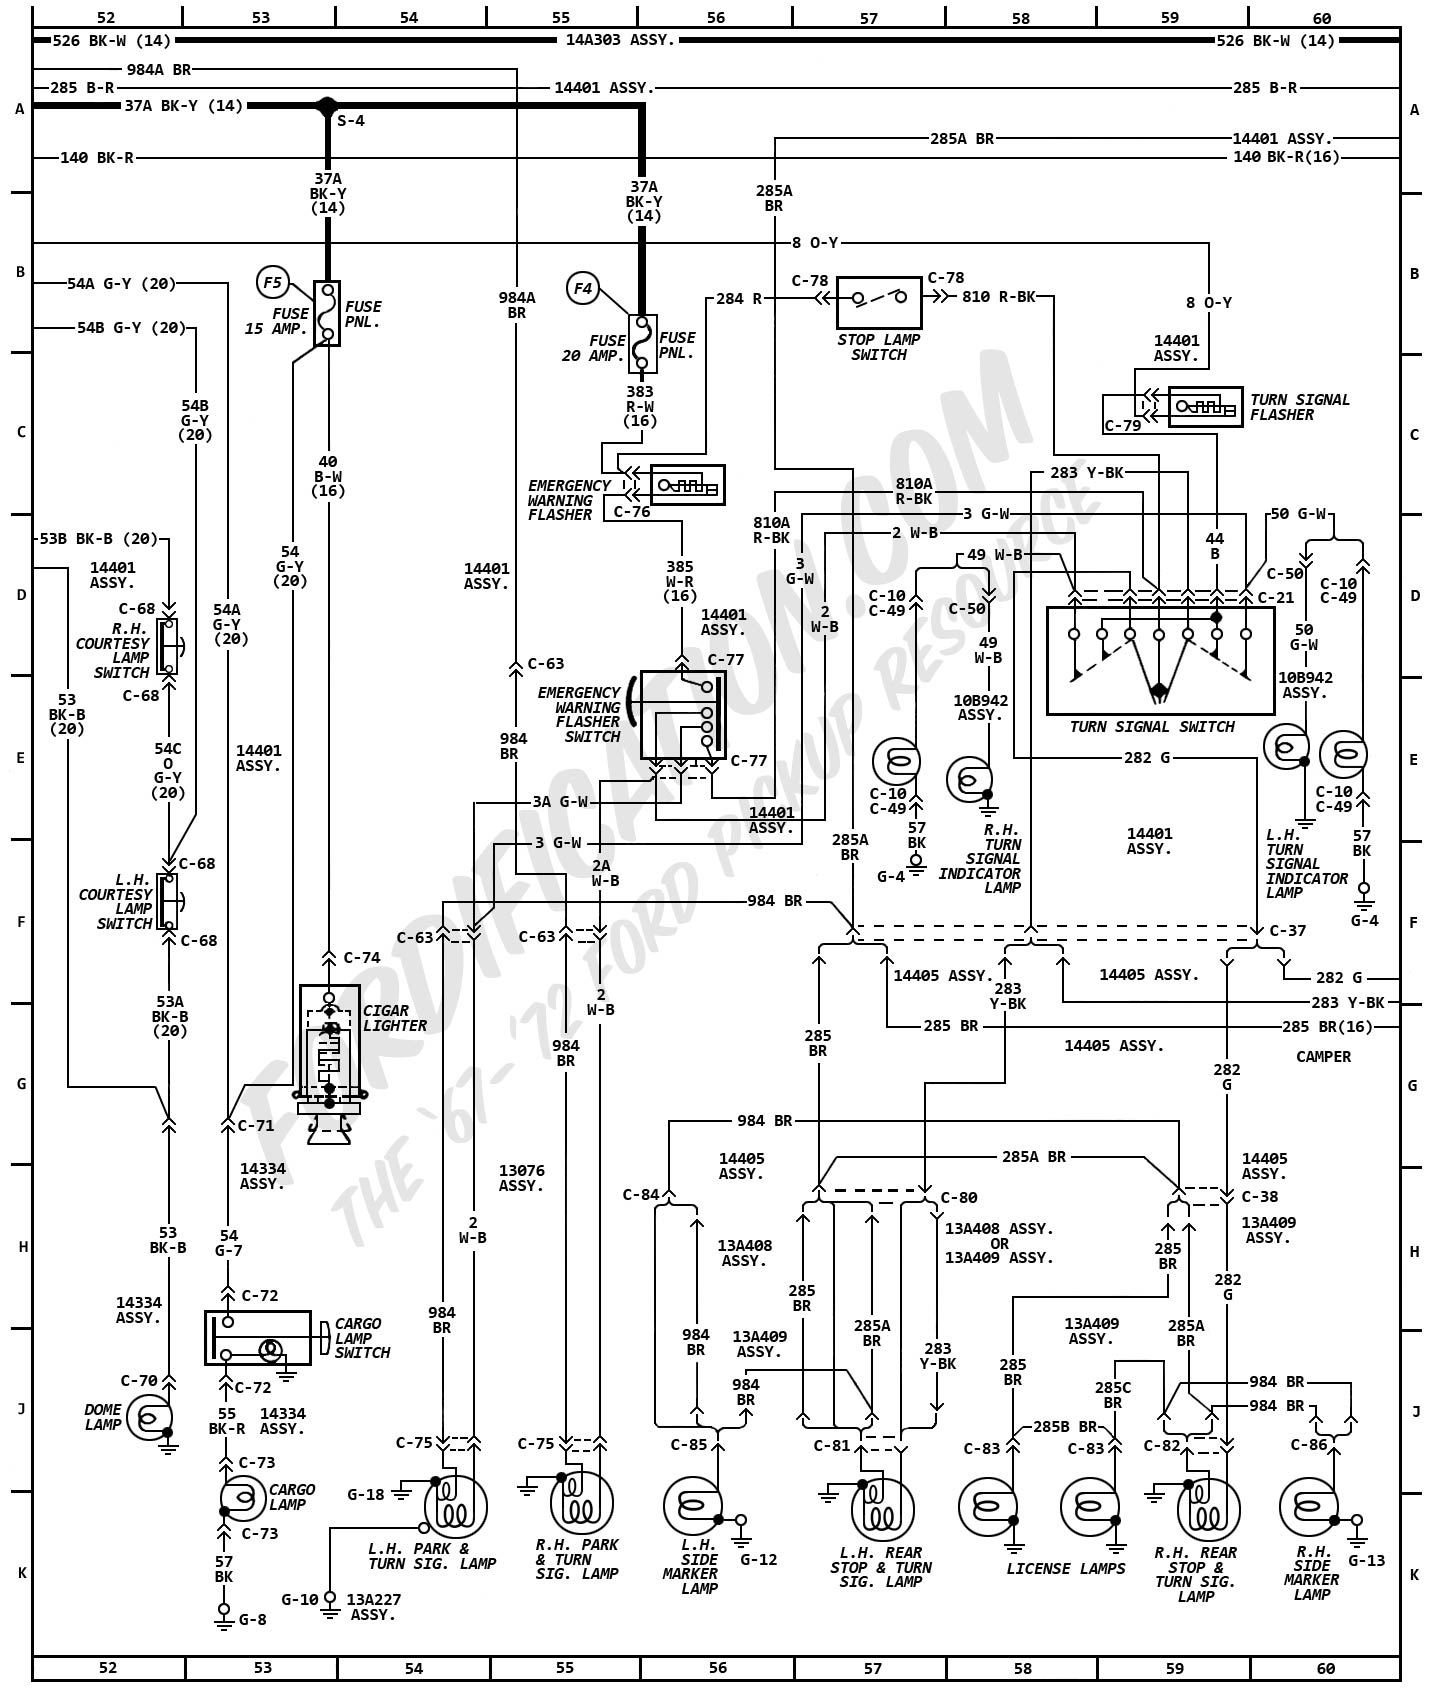 1970 Mustang Horn Wiring Diagram moreover 1968 Lemans Wiring Diagram also 68 Mustang Tachometer Wiring Diagrams further 69 Gto Horn Relay Wiring Diagram For together with P 0900c1528008226f. on 1964 gto radio wiring